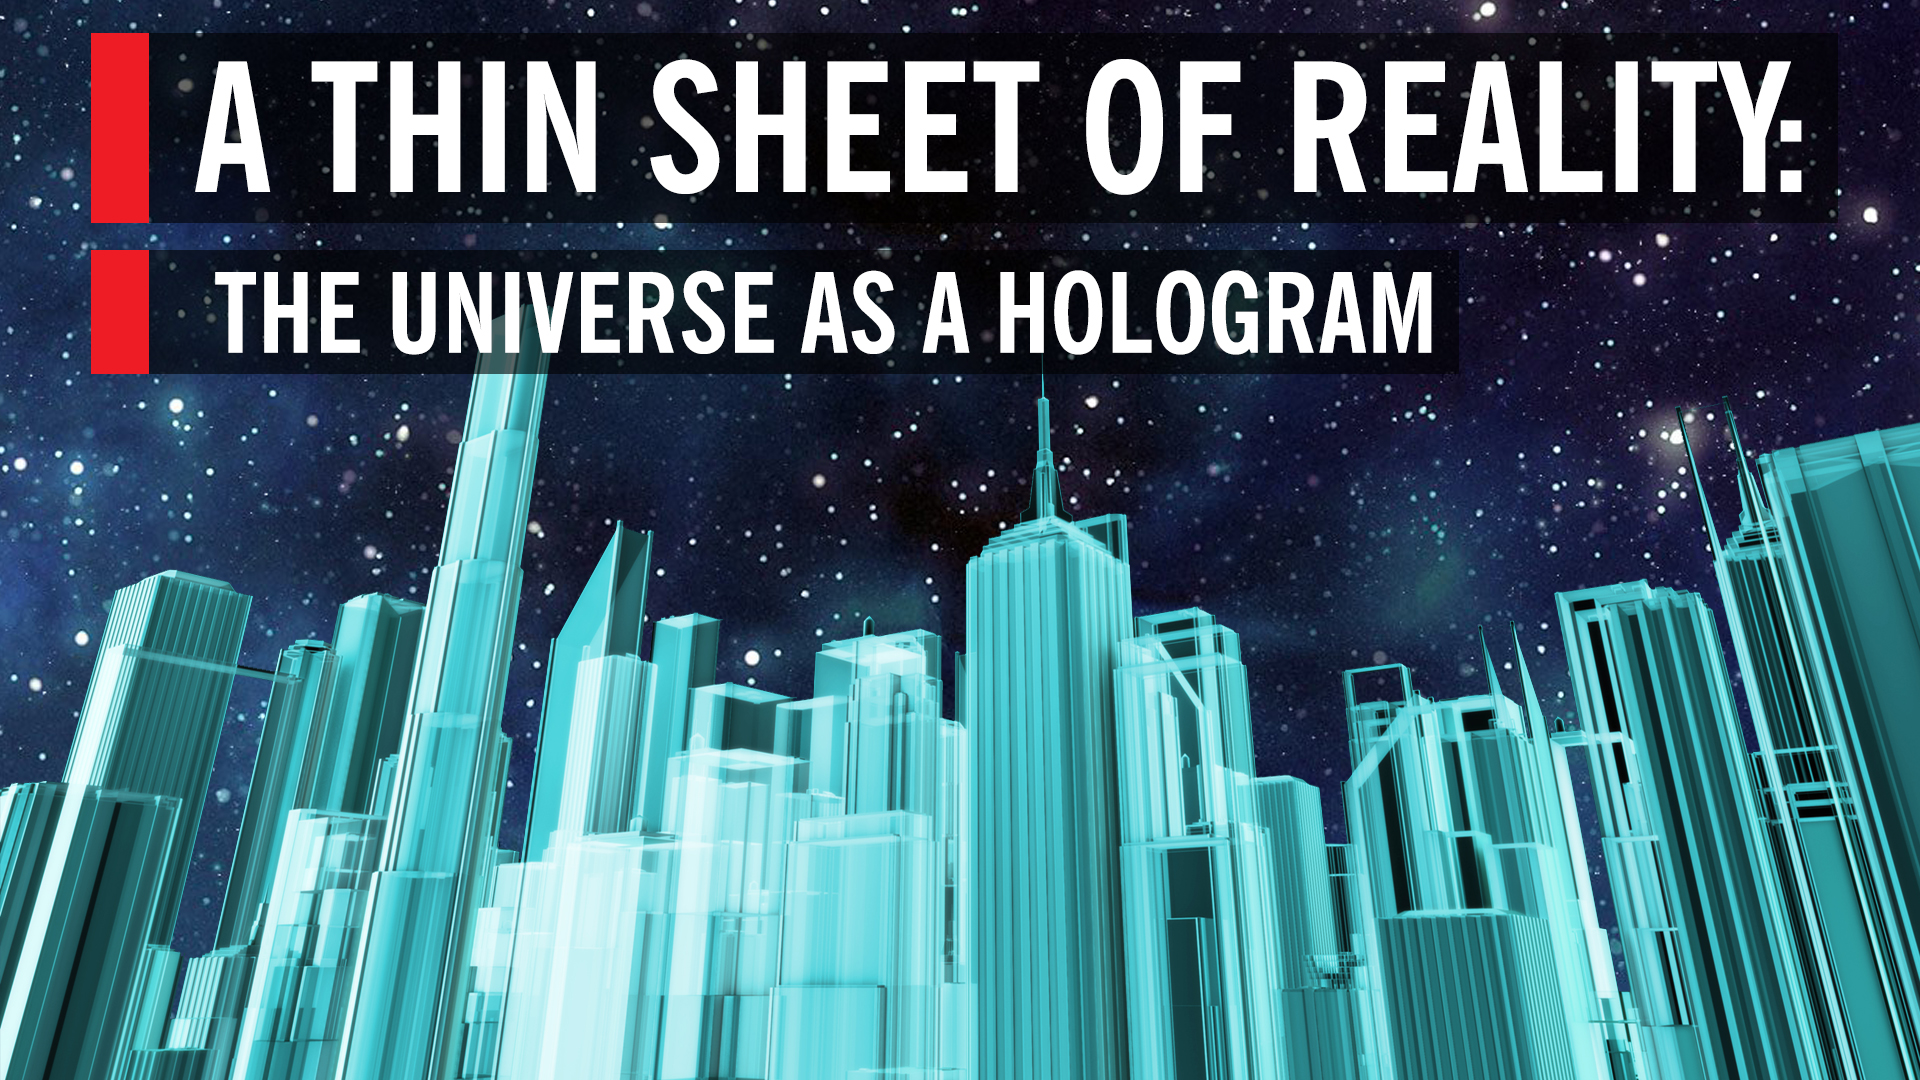 A Thin Sheet of Reality: The Universe as a Hologram   World